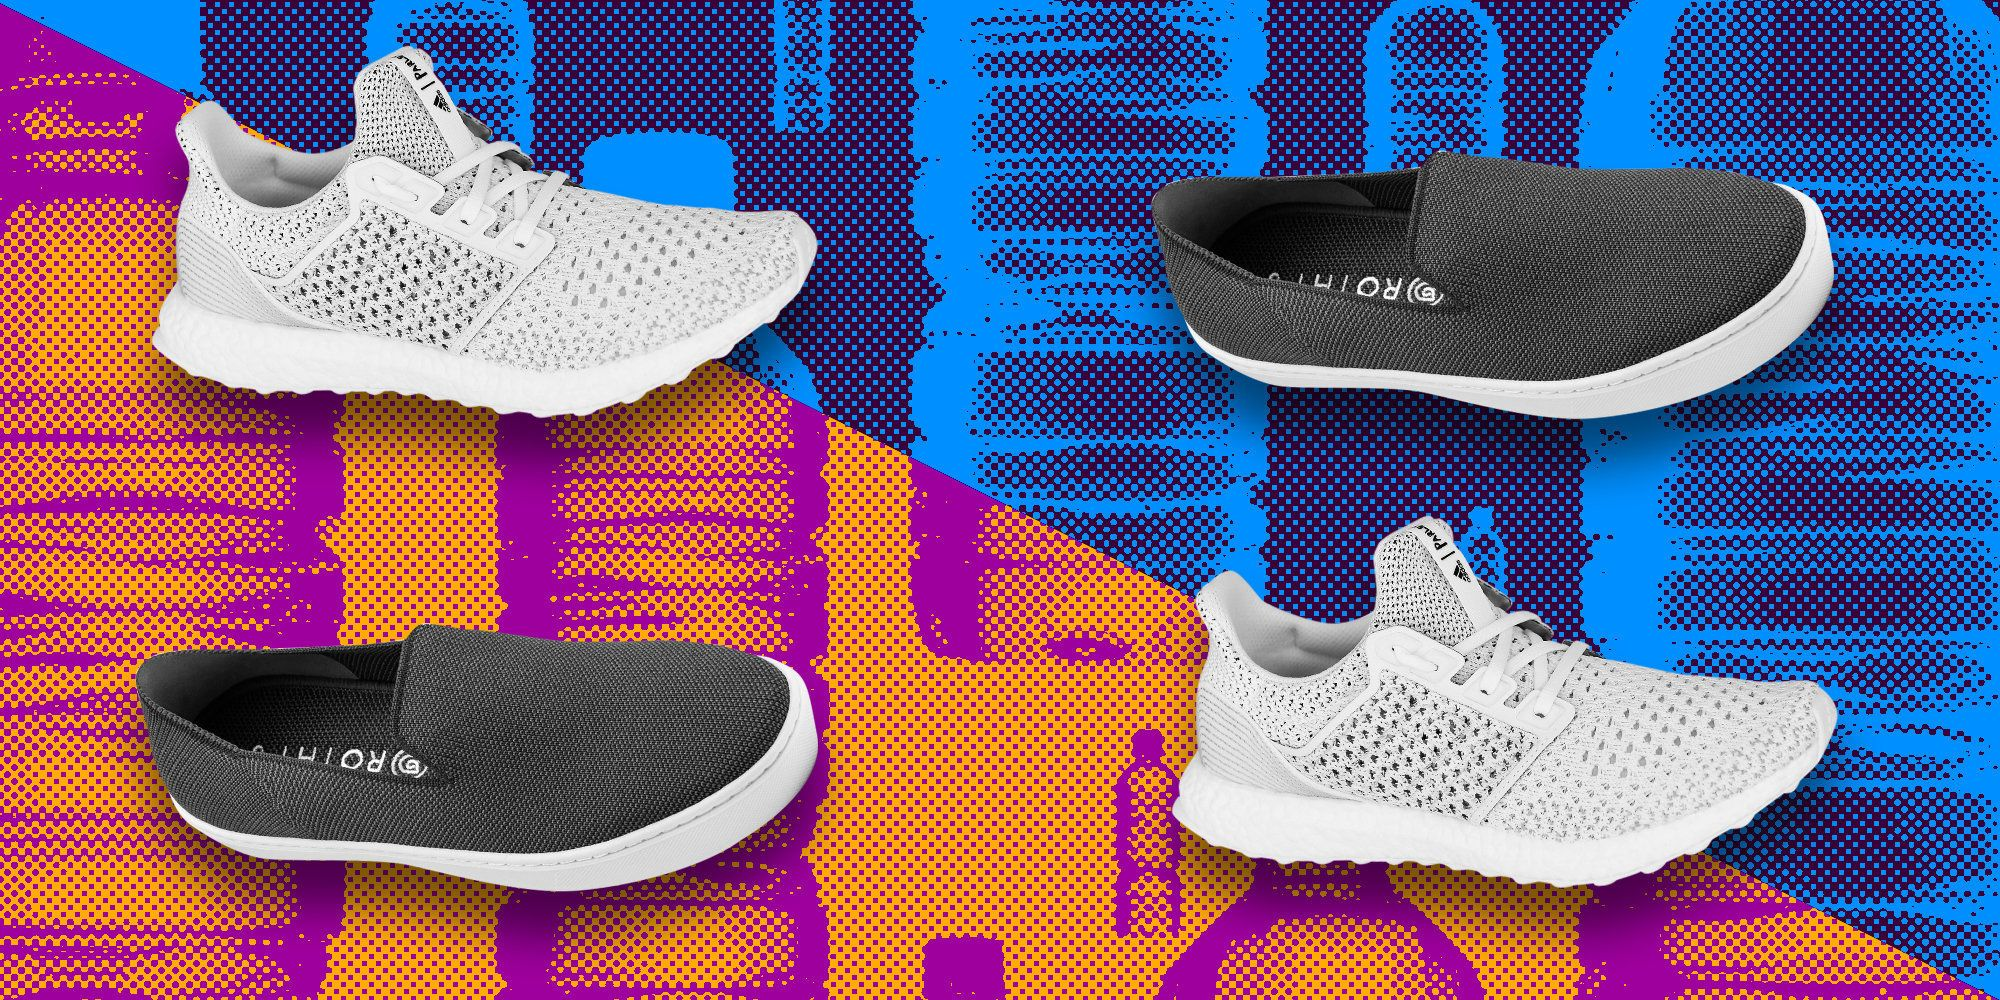 These Eco-Friendly Shoes Are Supposed To Save The Planet. Will